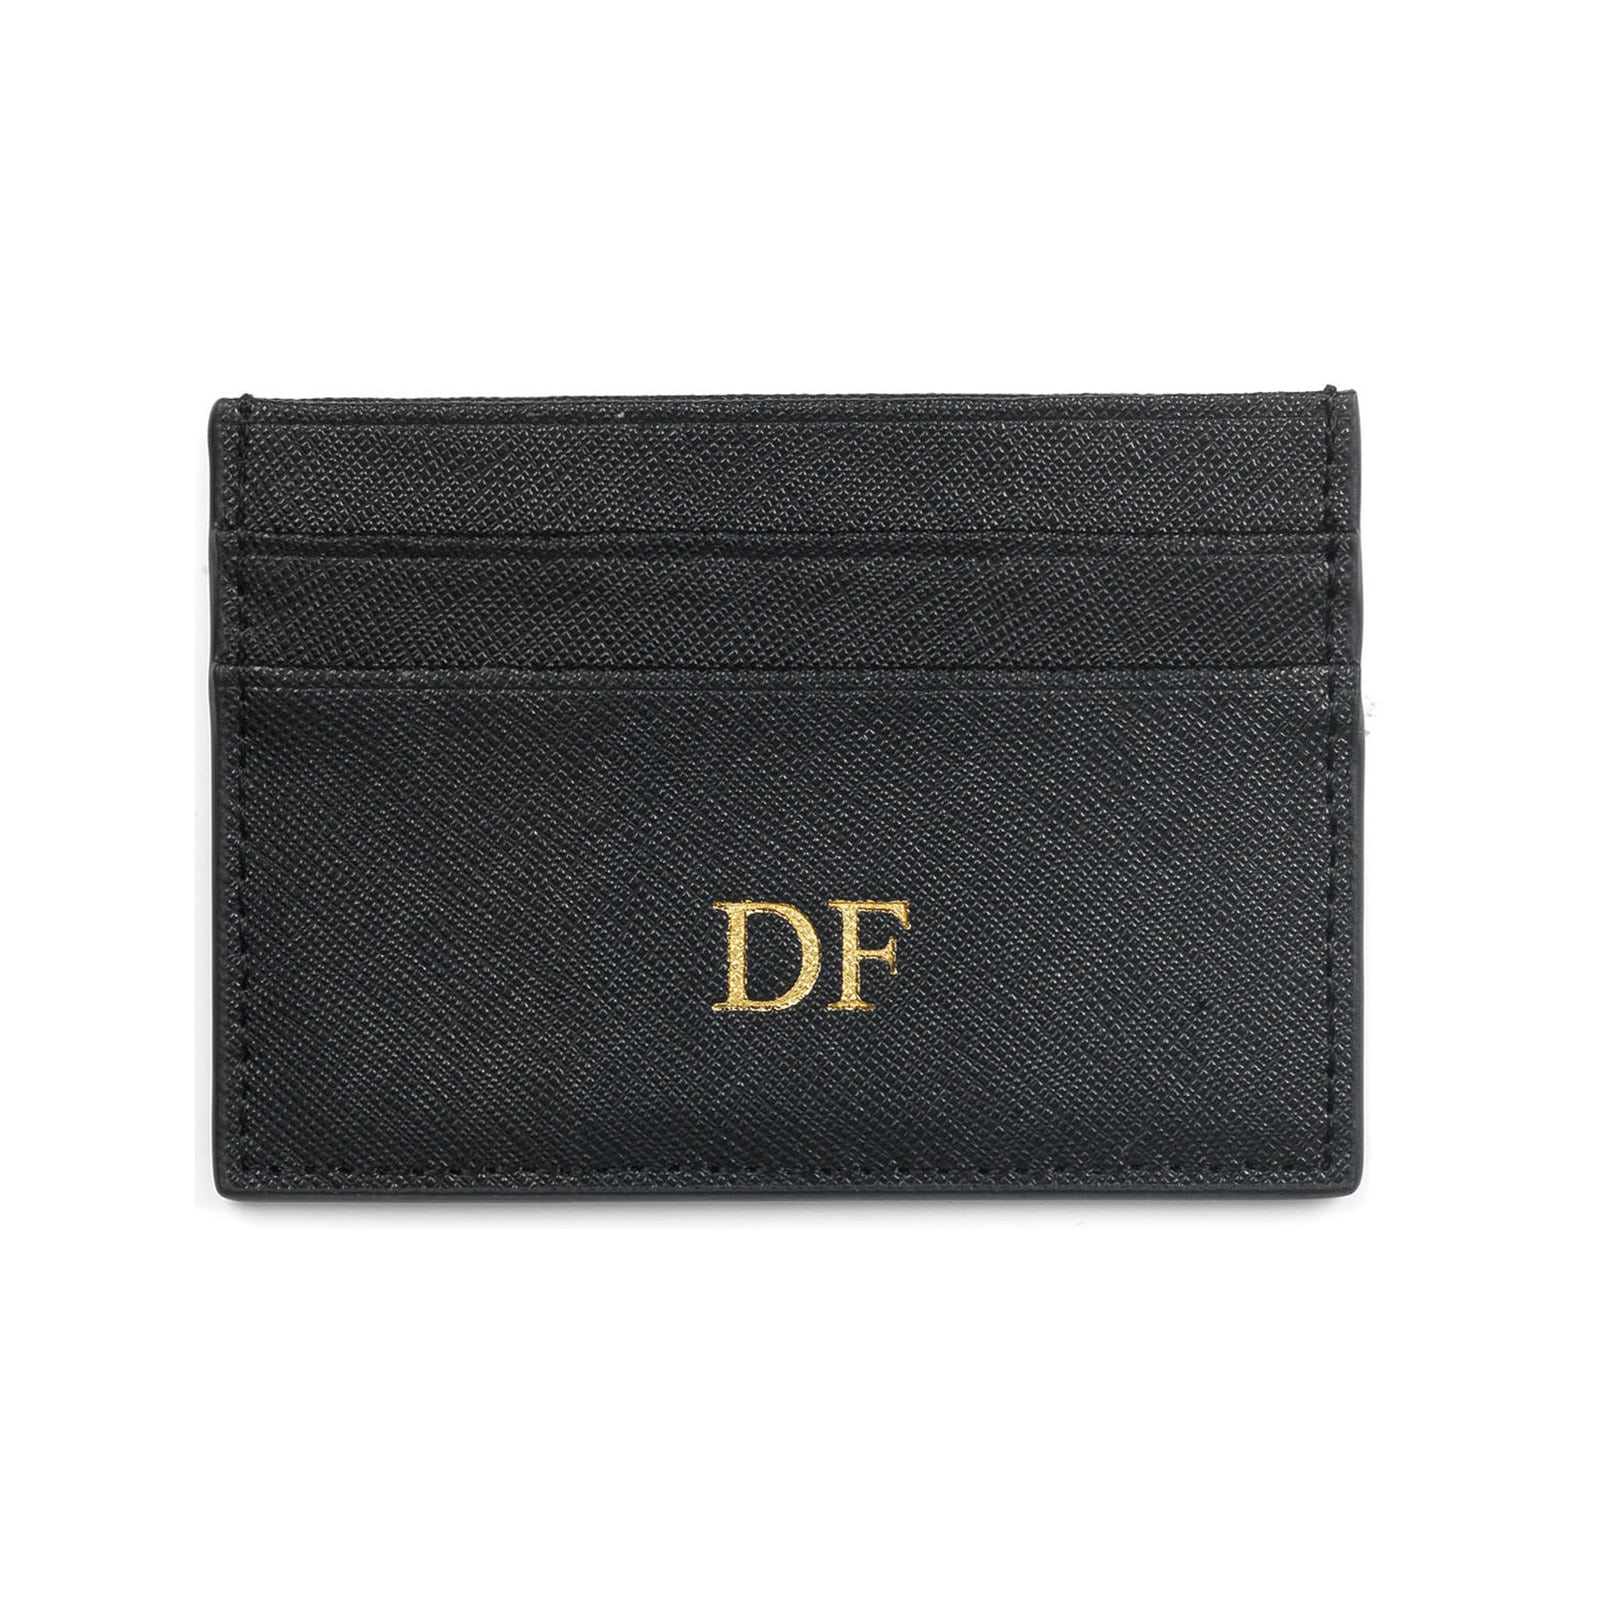 Personalised Black Saffiano Leather Card Holder